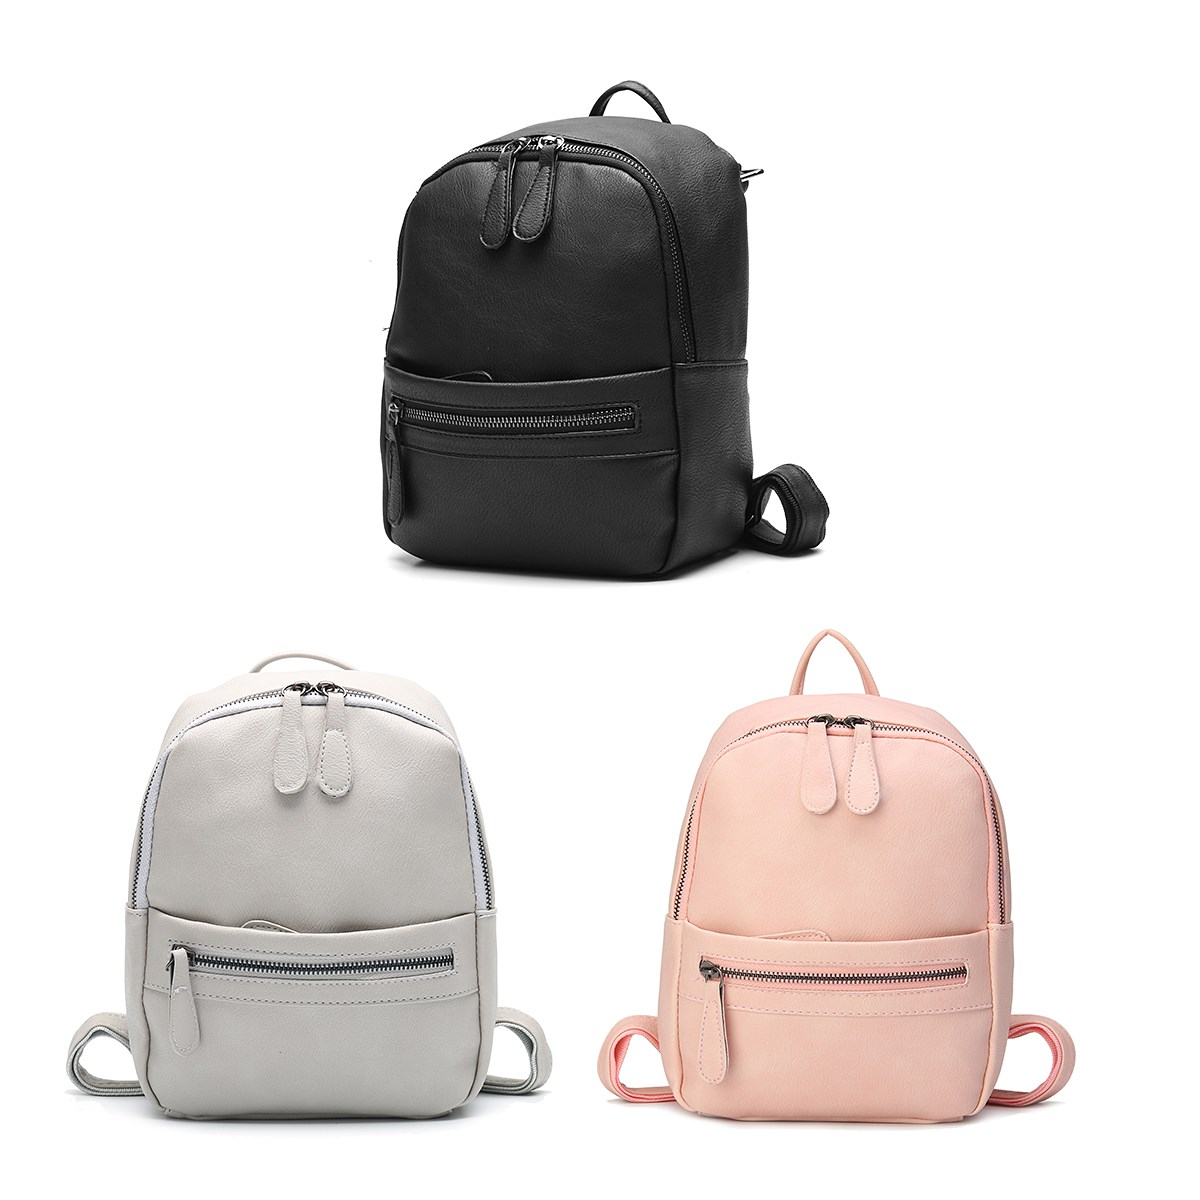 b6c4c00c86 AEQUEEN Leather Backpack Women 2018 Fashion Candy Color Mini Backpacks  School Bags For Teenagers Girls Cute Rucksack